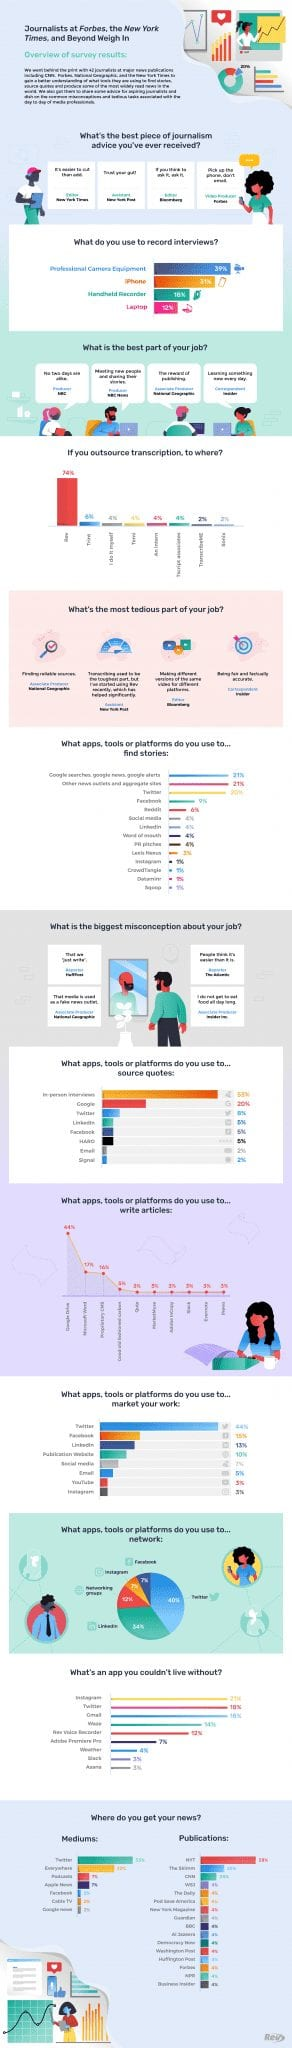 Infographic with illustration of journalist survey results